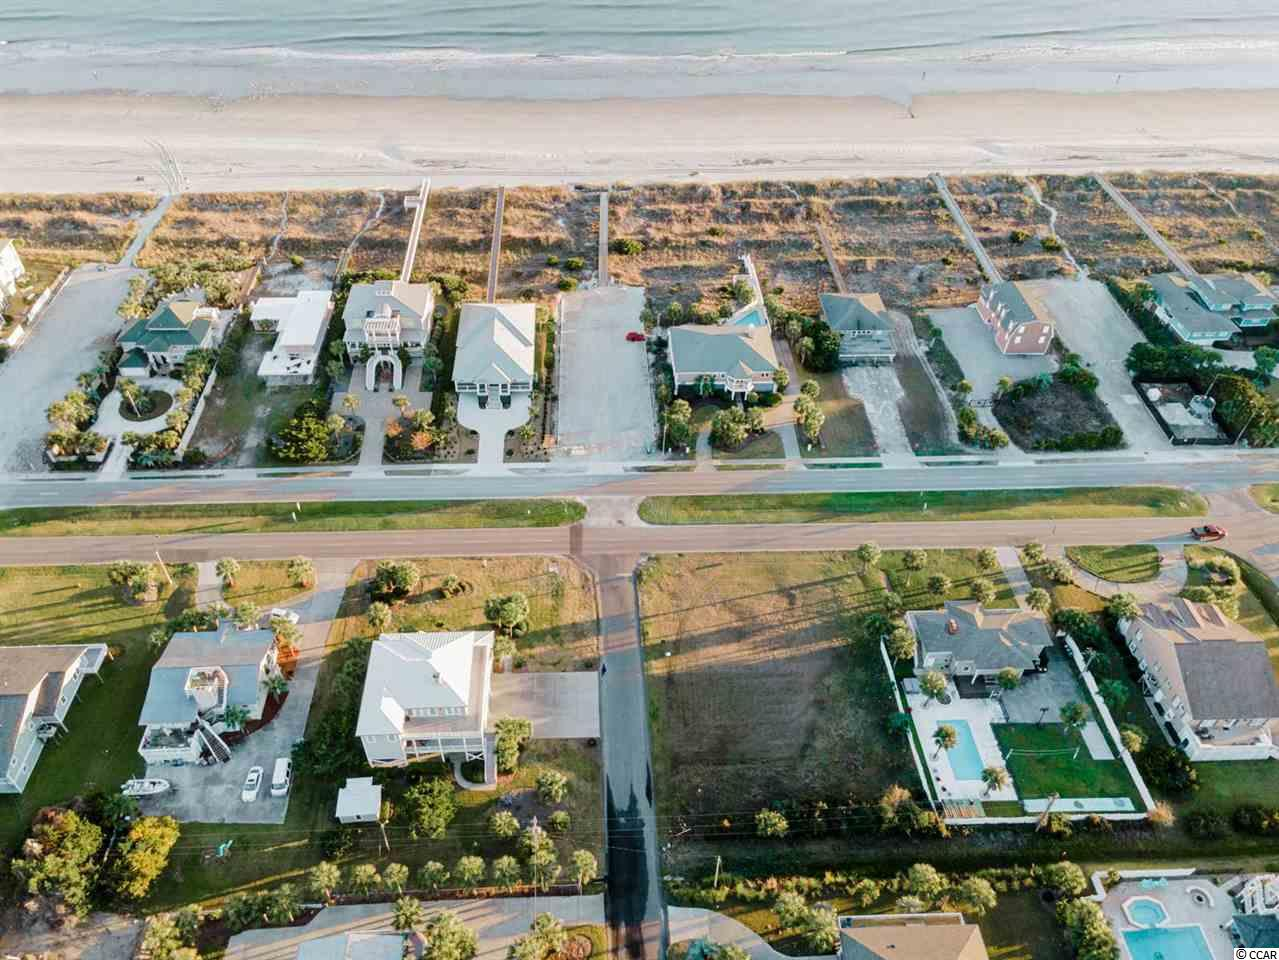 Come build your dream home just across the street from the ocean in North Myrtle Beach! This RARE .34 acre CORNER lot won't last long! Perfectly situated close to all of the area's dining, shopping, golf, and entertainment attractions, and just a few steps across the street to the beach. With NO HOA and NO timeframe to build. You won't want to miss this.